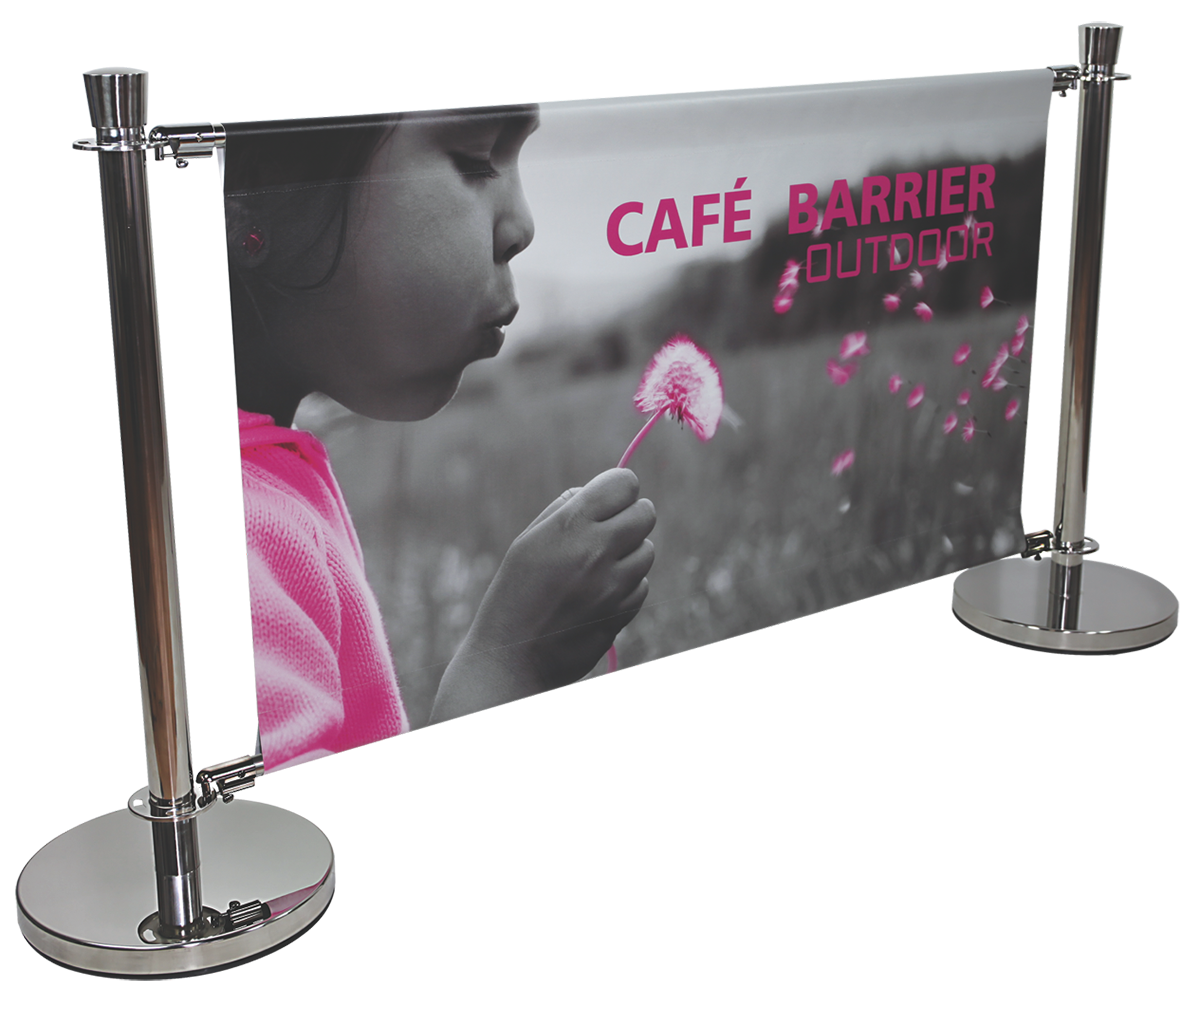 Cafe Barrier